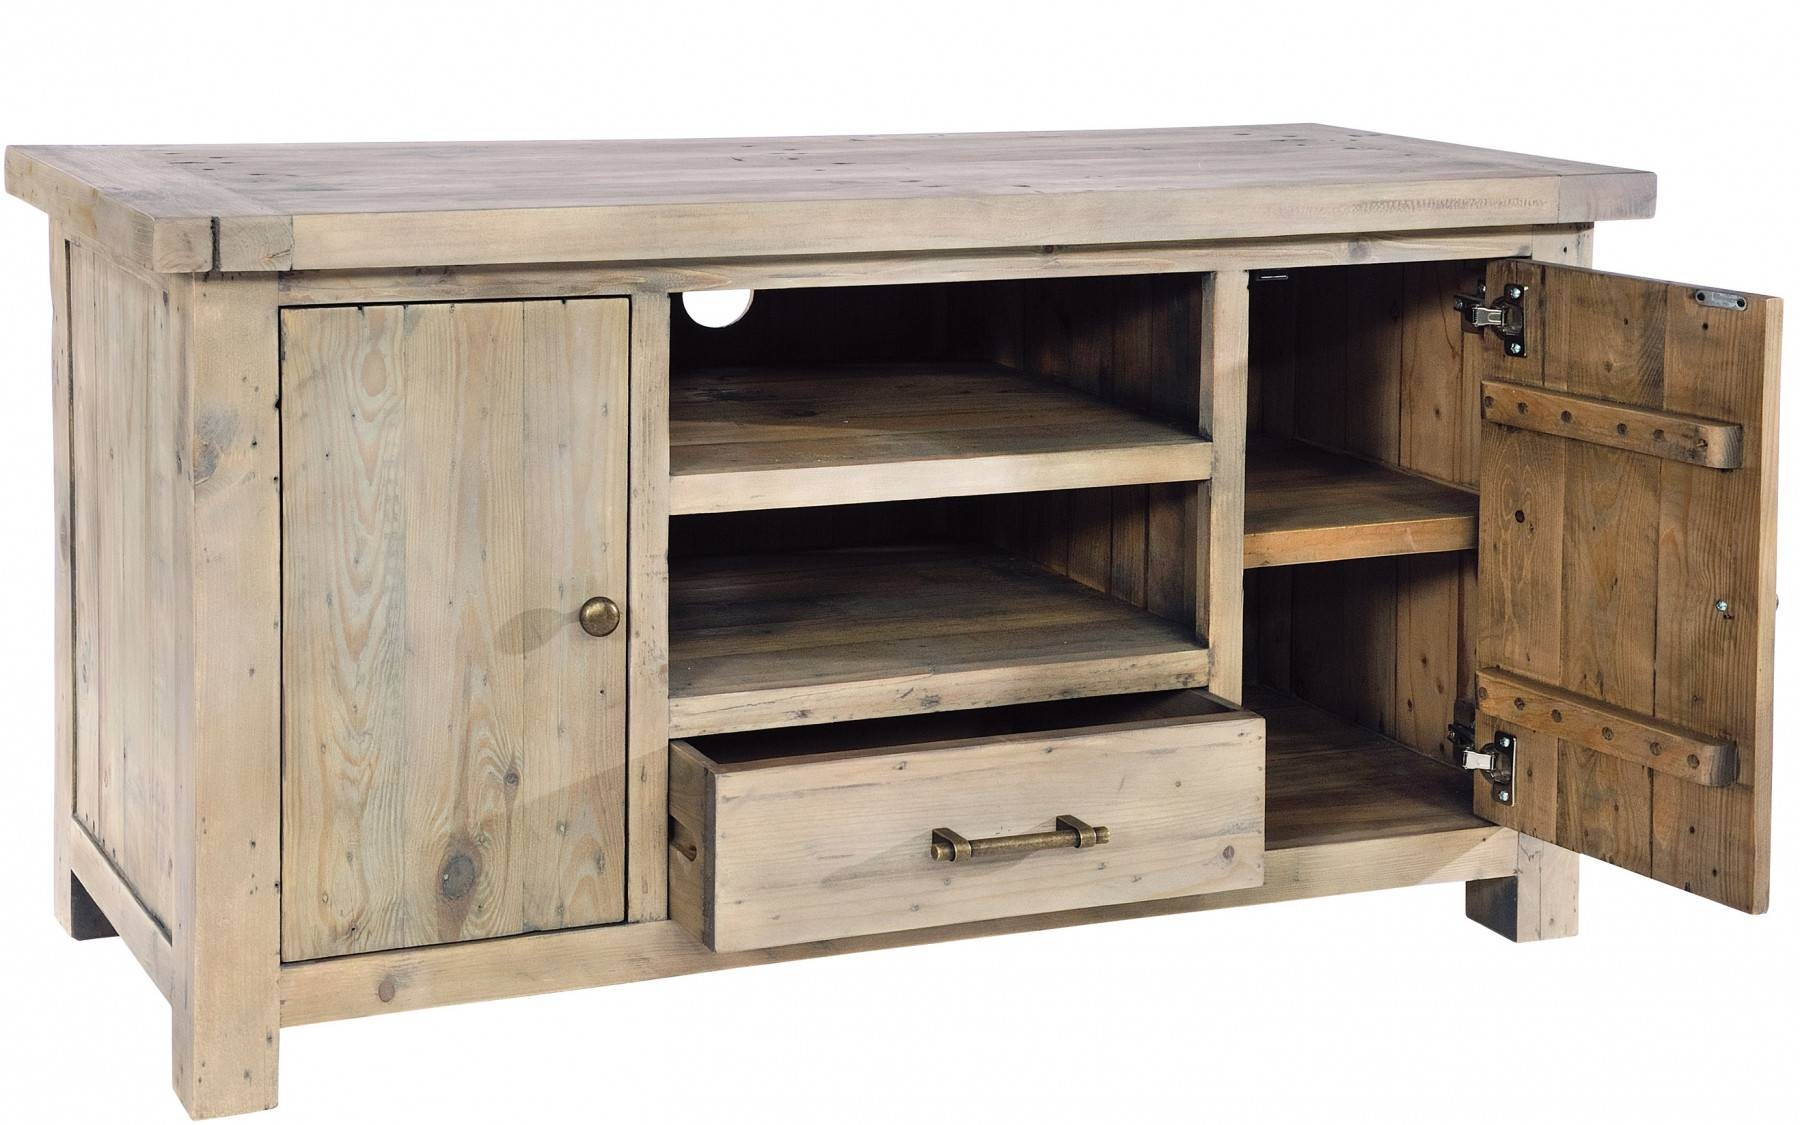 Harper Reclaimed Pine Tv Unit | Buy At Kontenta with Pine Tv Unit (Image 6 of 15)